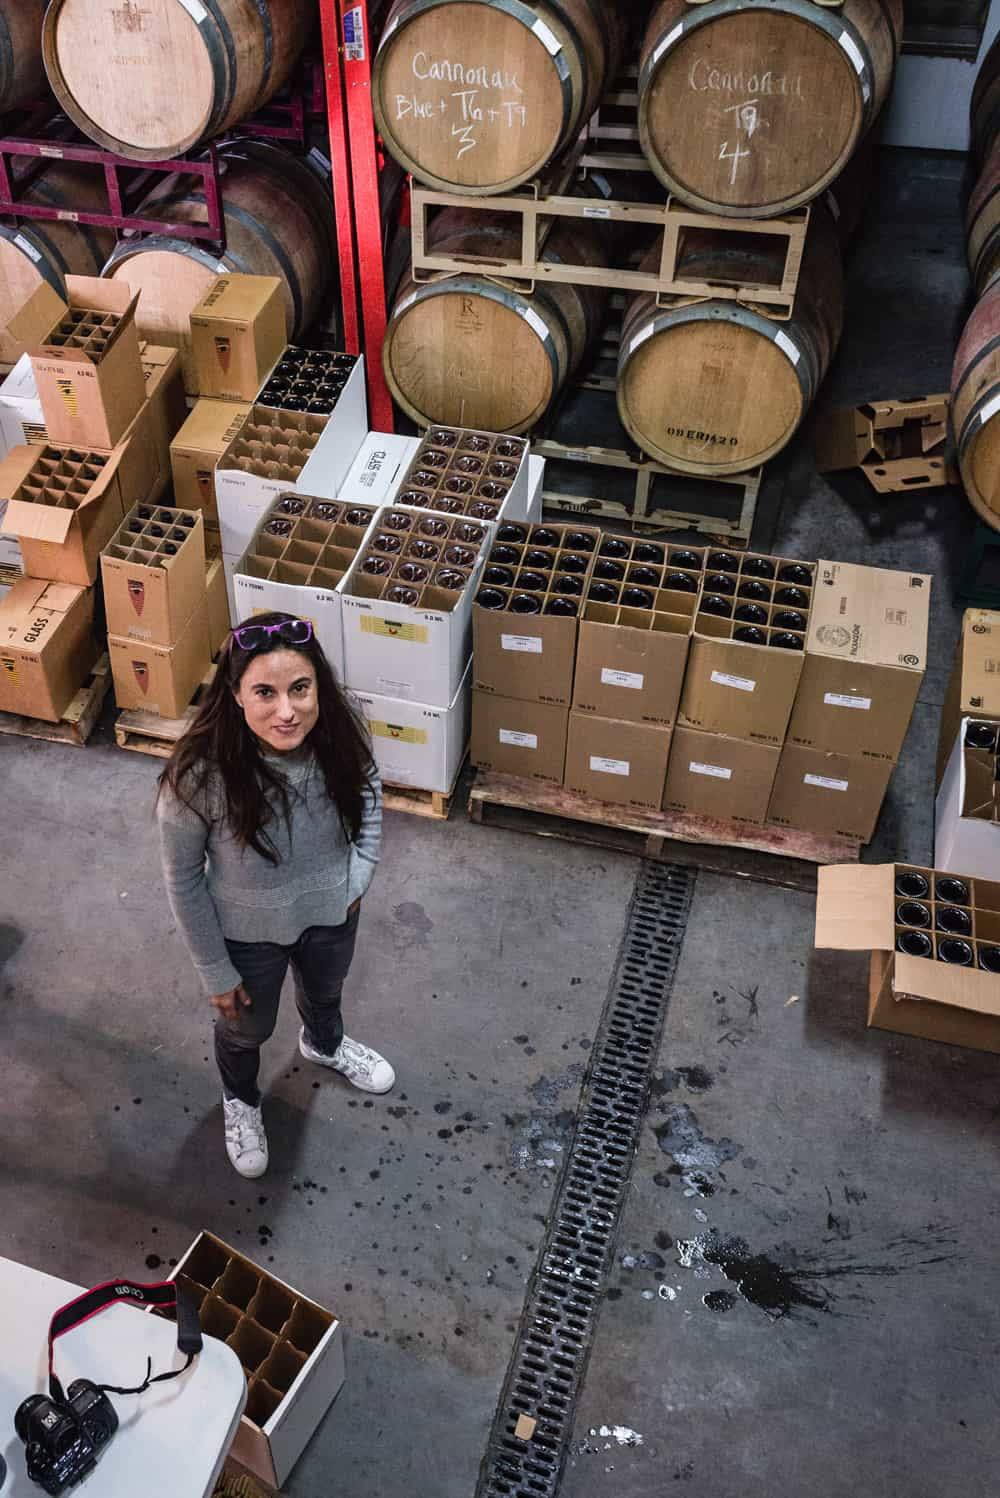 Being the scenes shot of me looking goofy in the wine storage room.